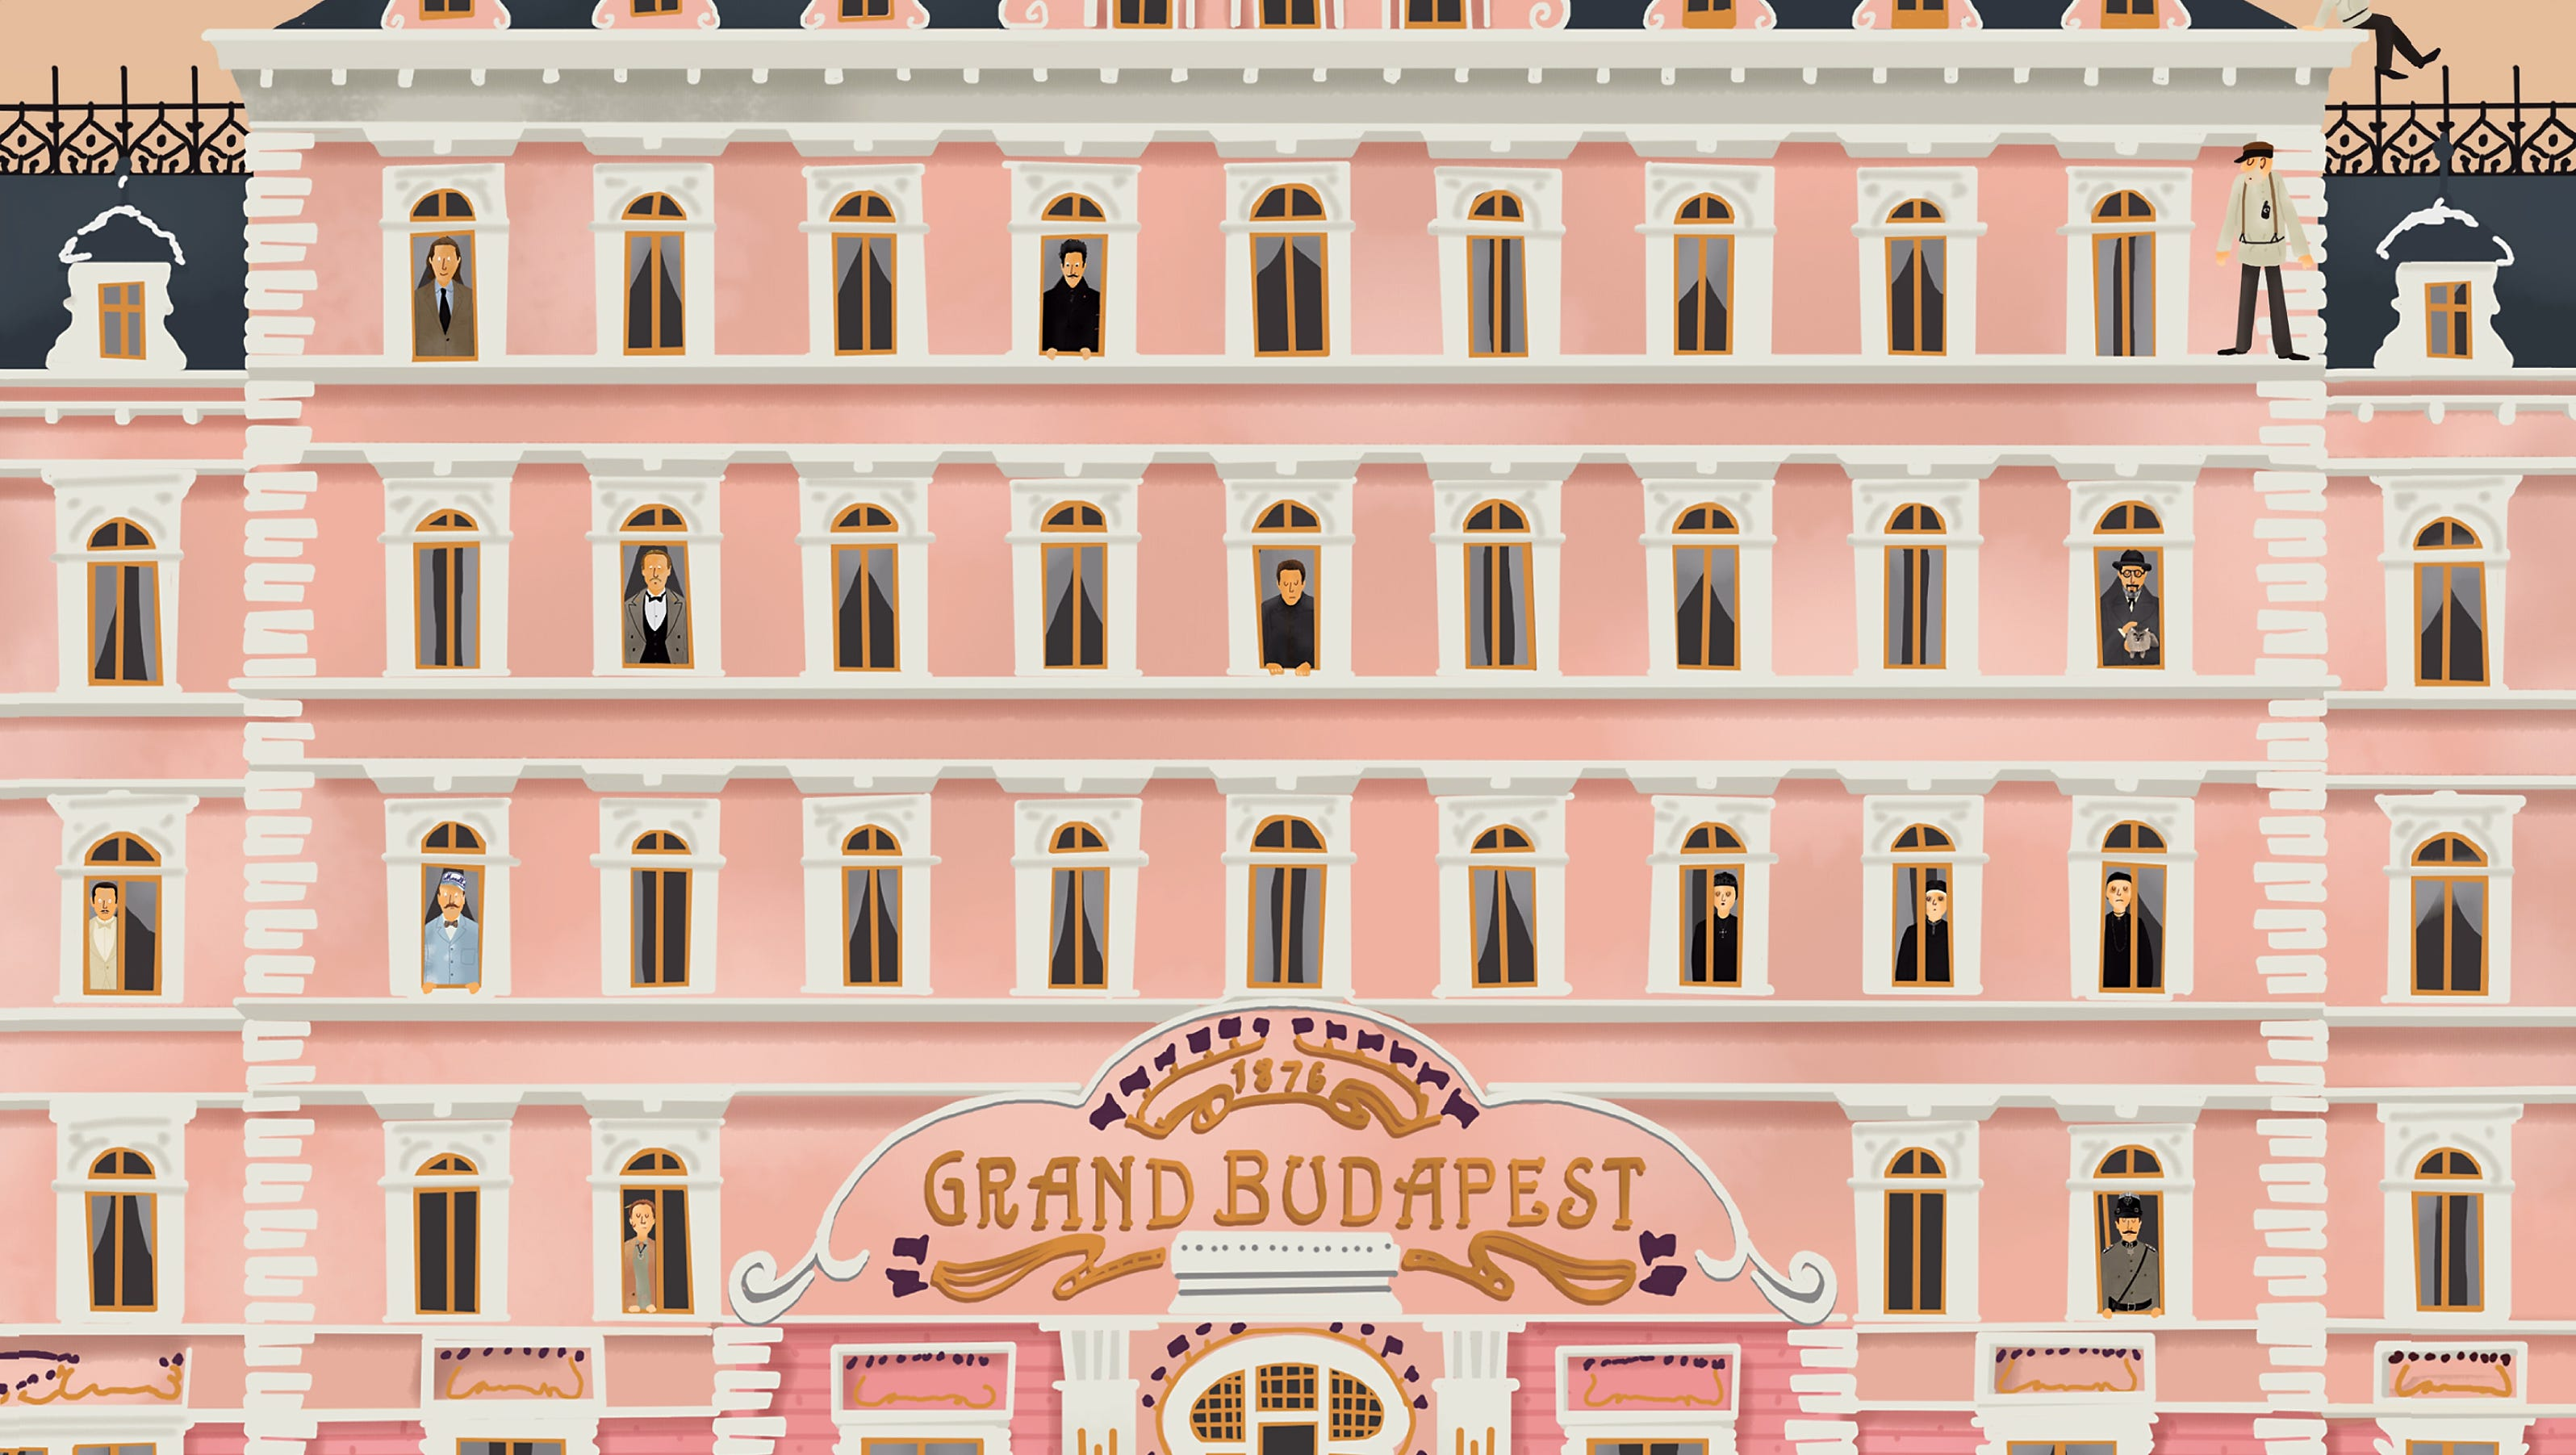 The Grand Budapest Hotel Story